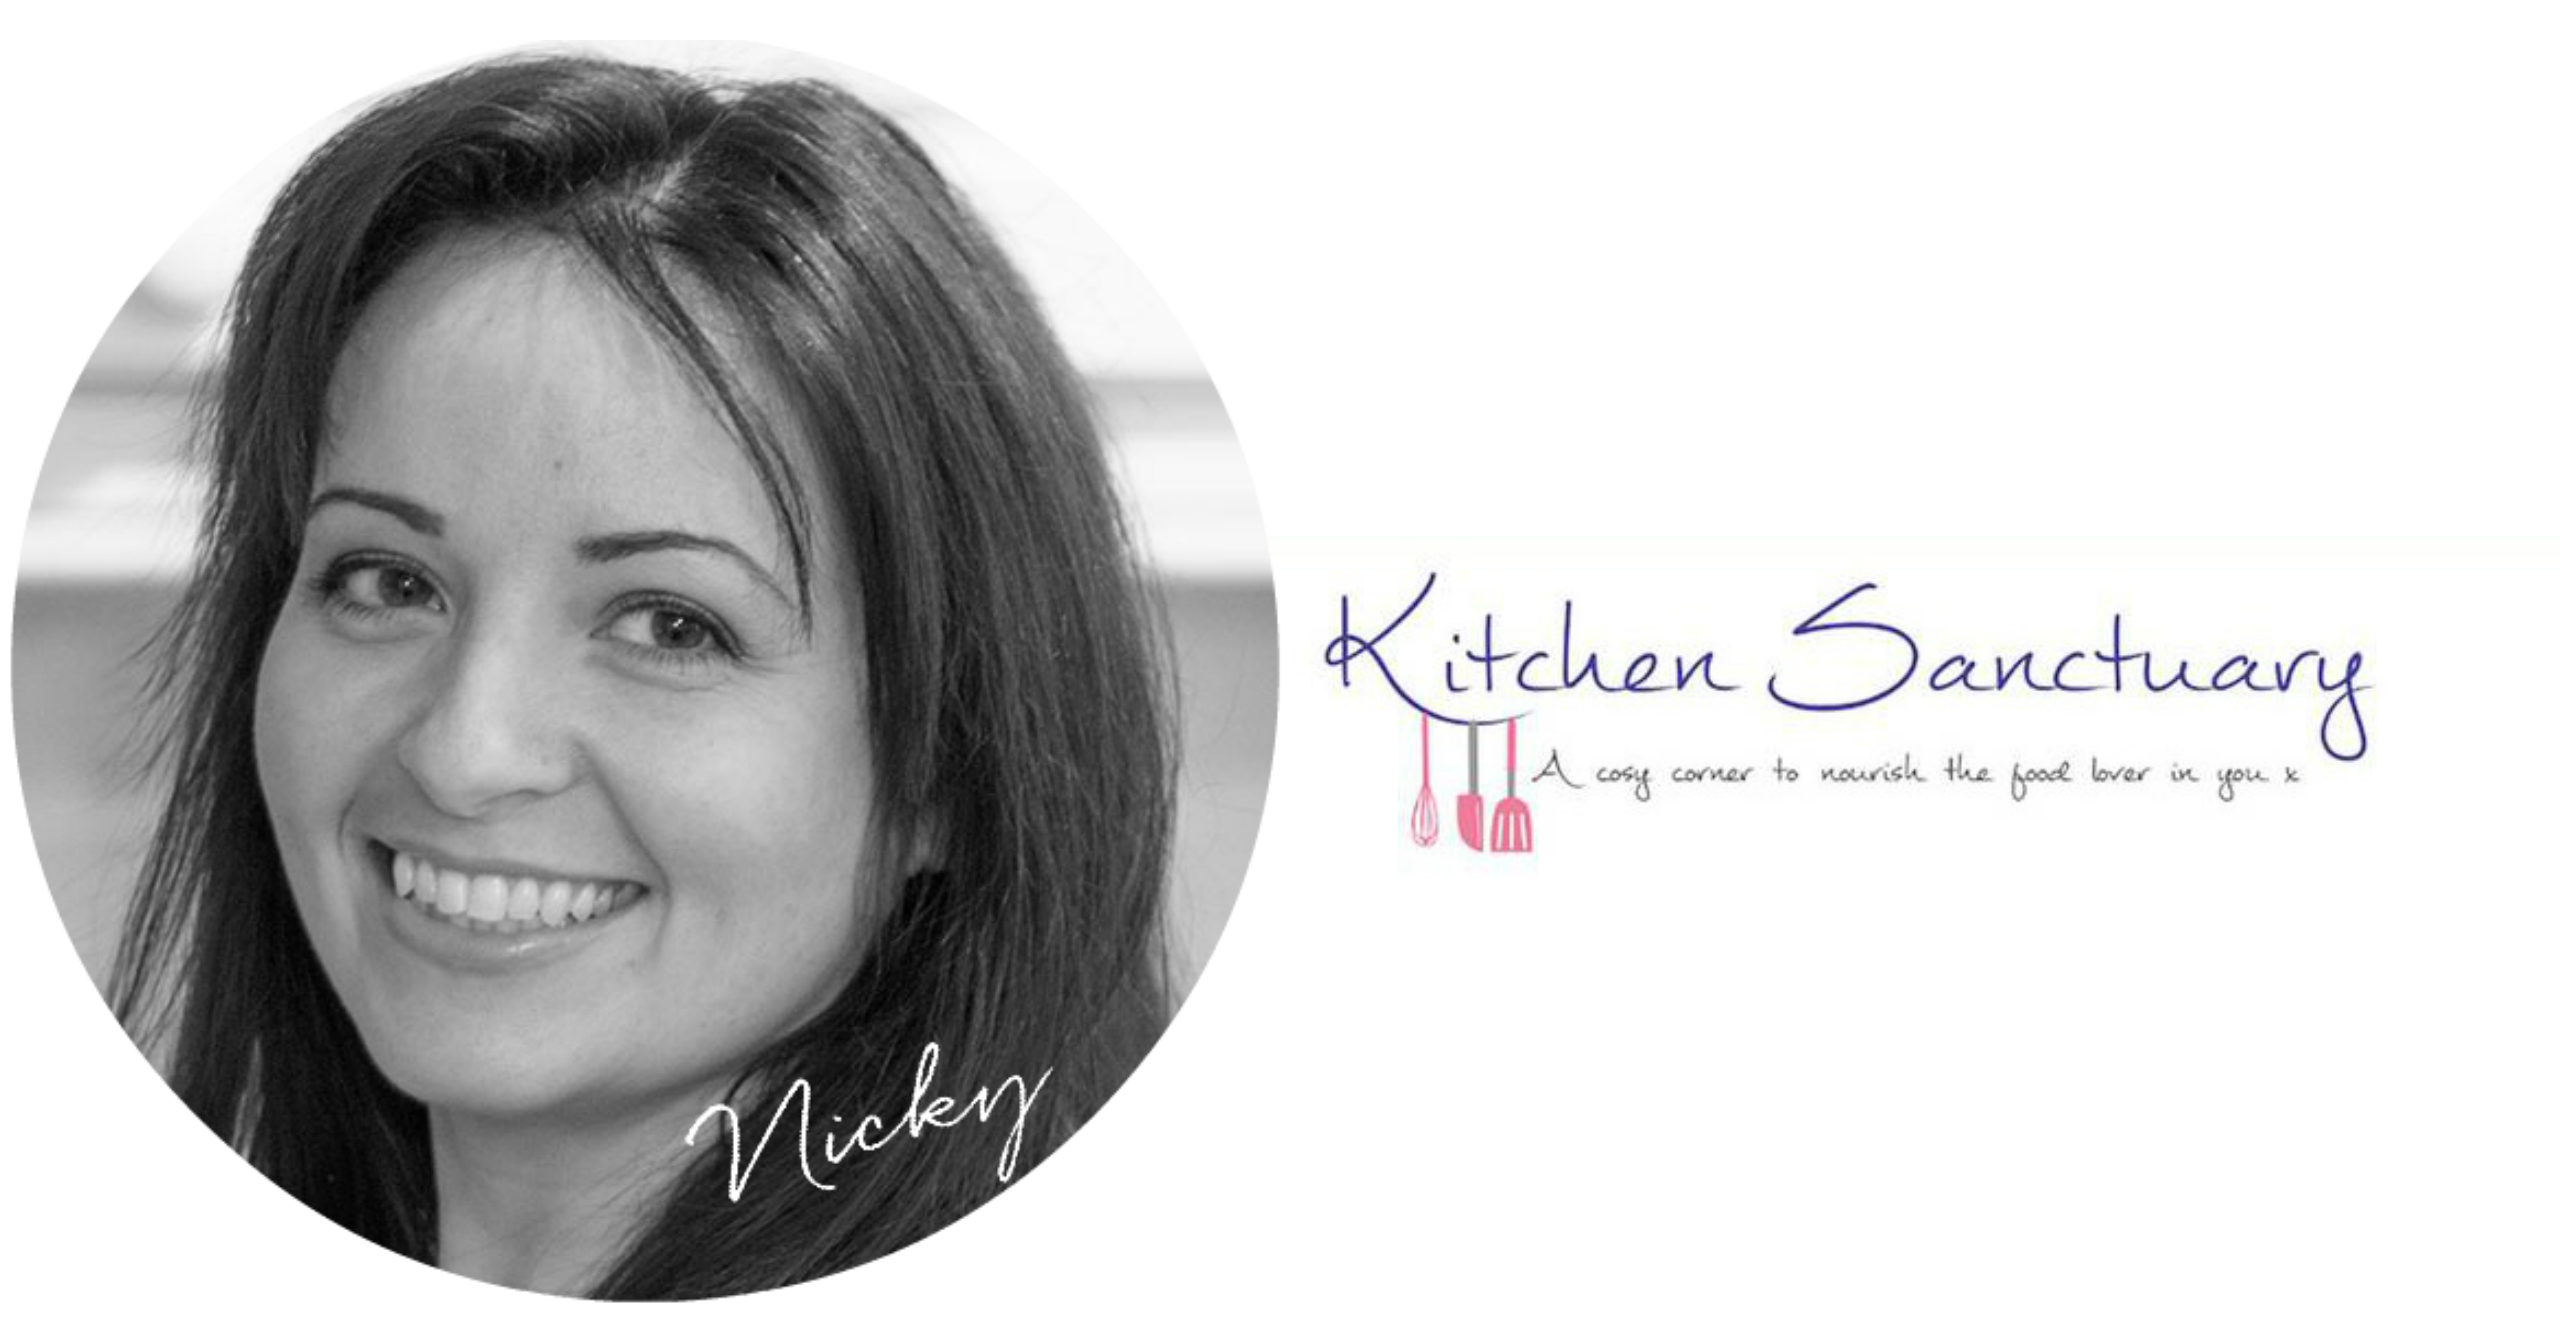 nickykitchen